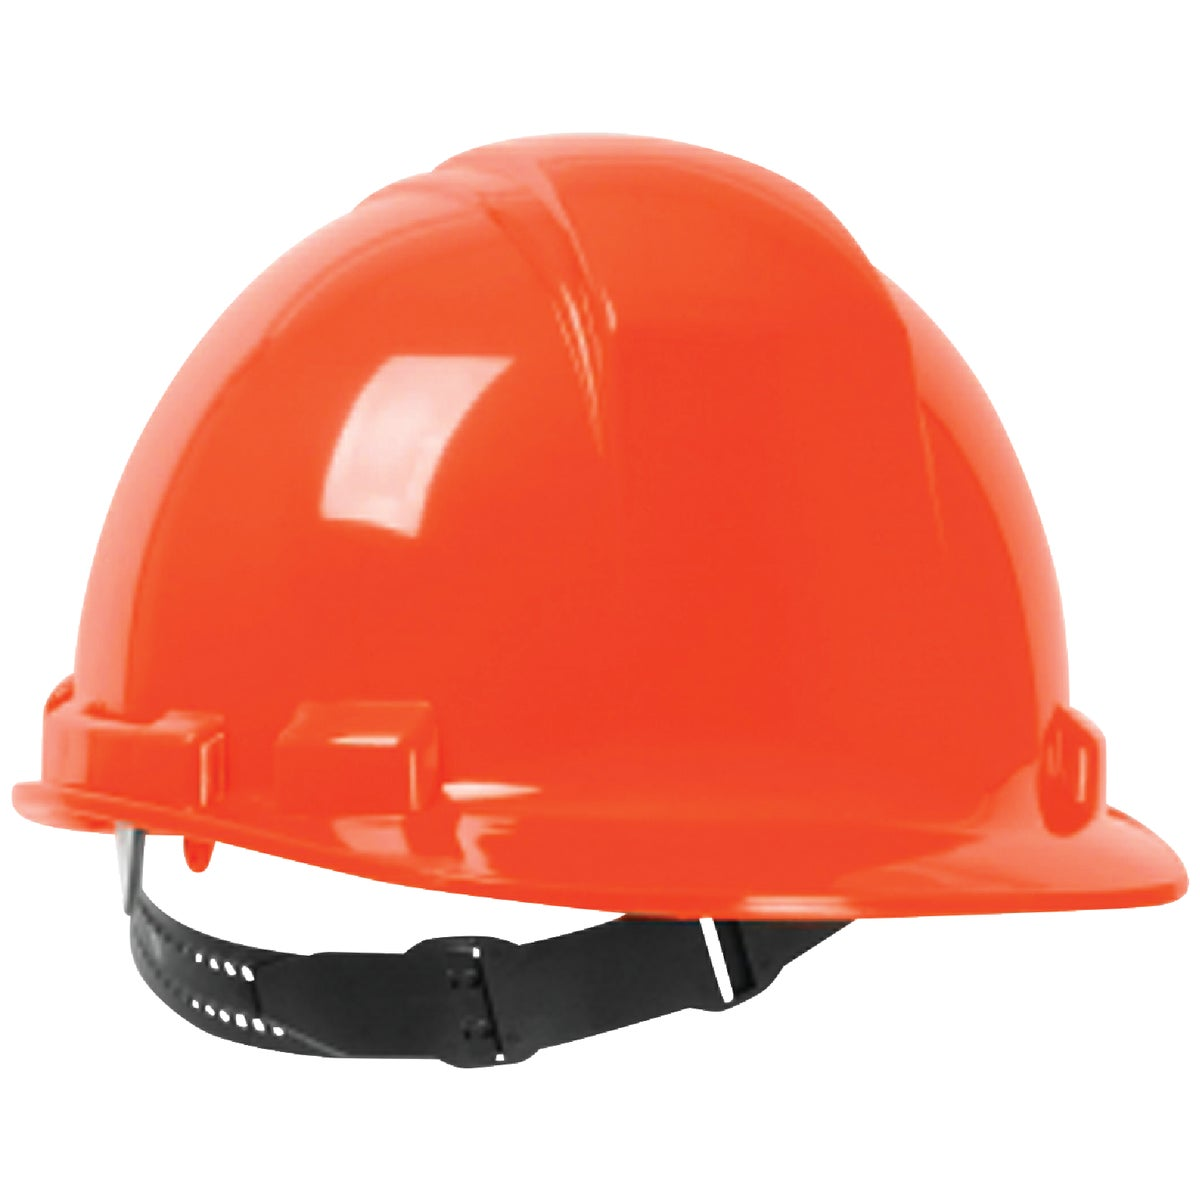 ORANGE HARD HAT